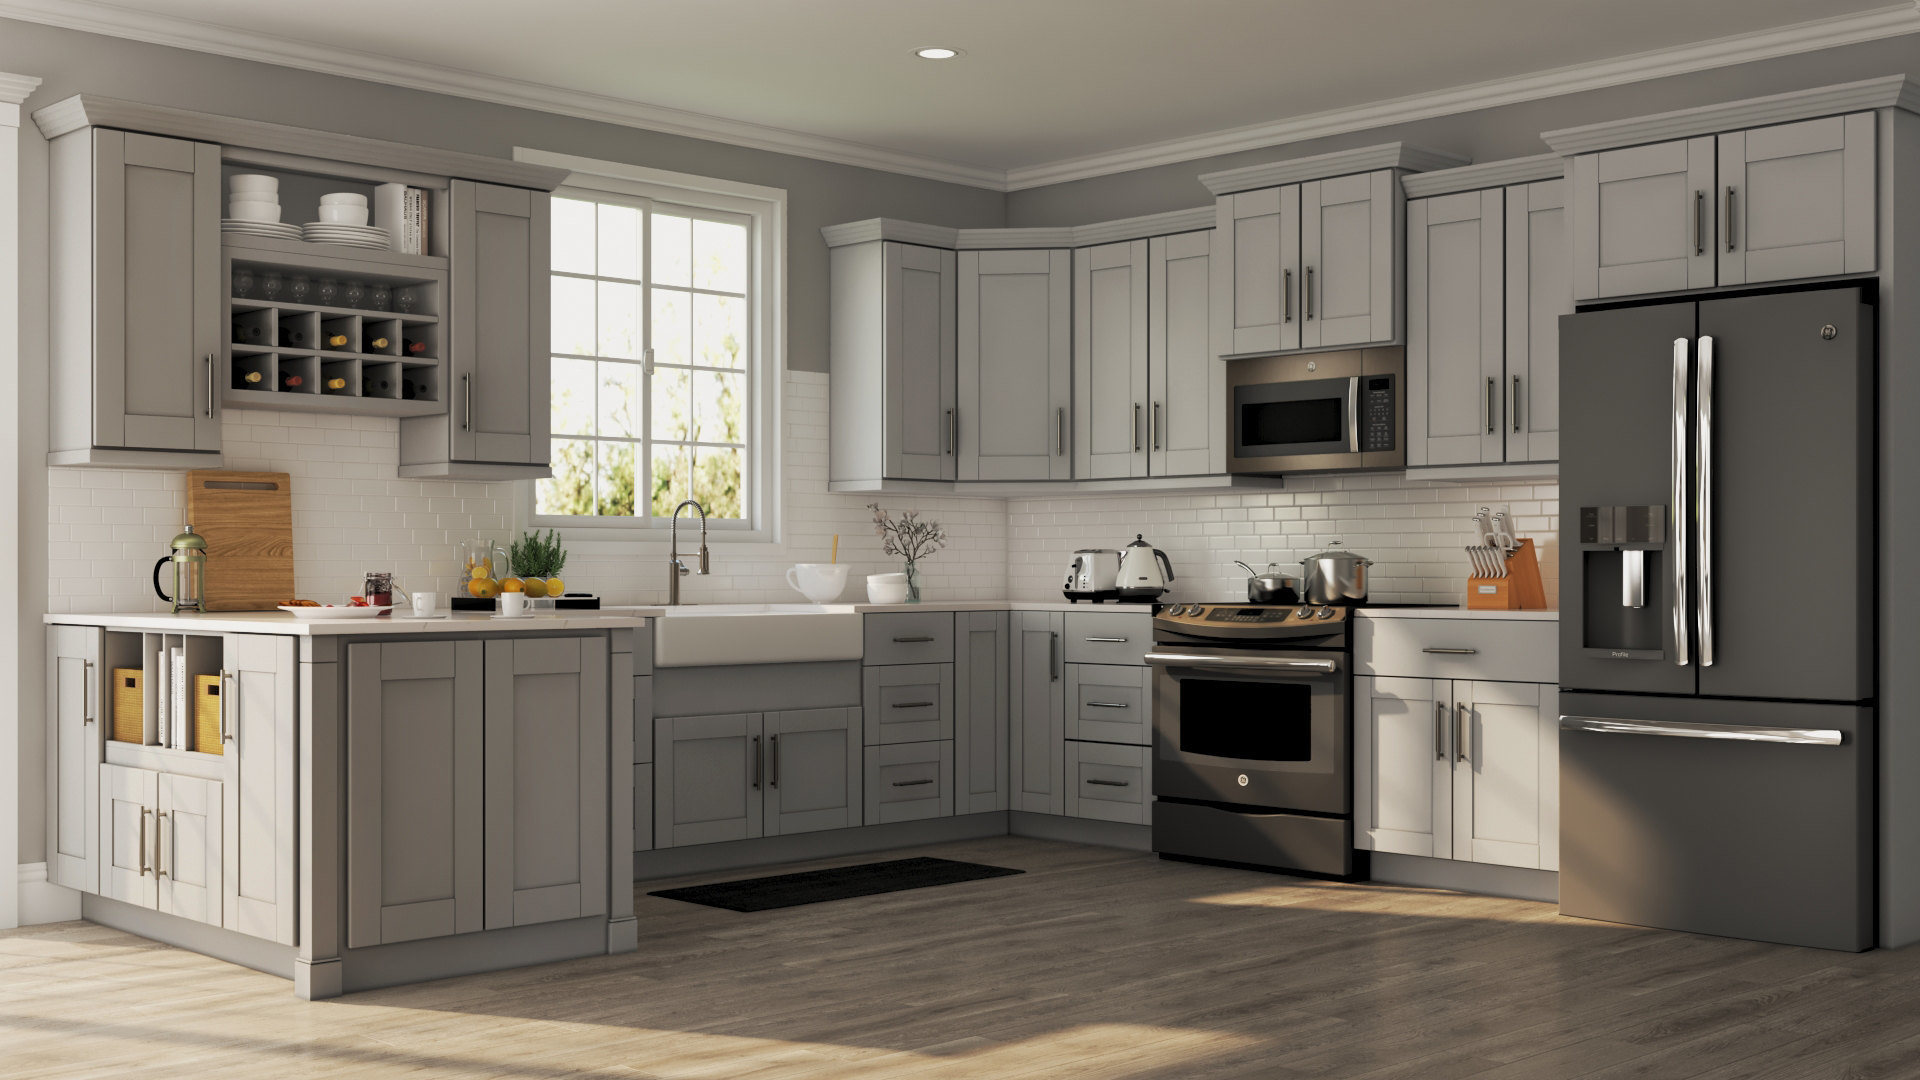 gray cabinet kitchens shaker wall cabinets in dove gray kitchen the home depot 15999